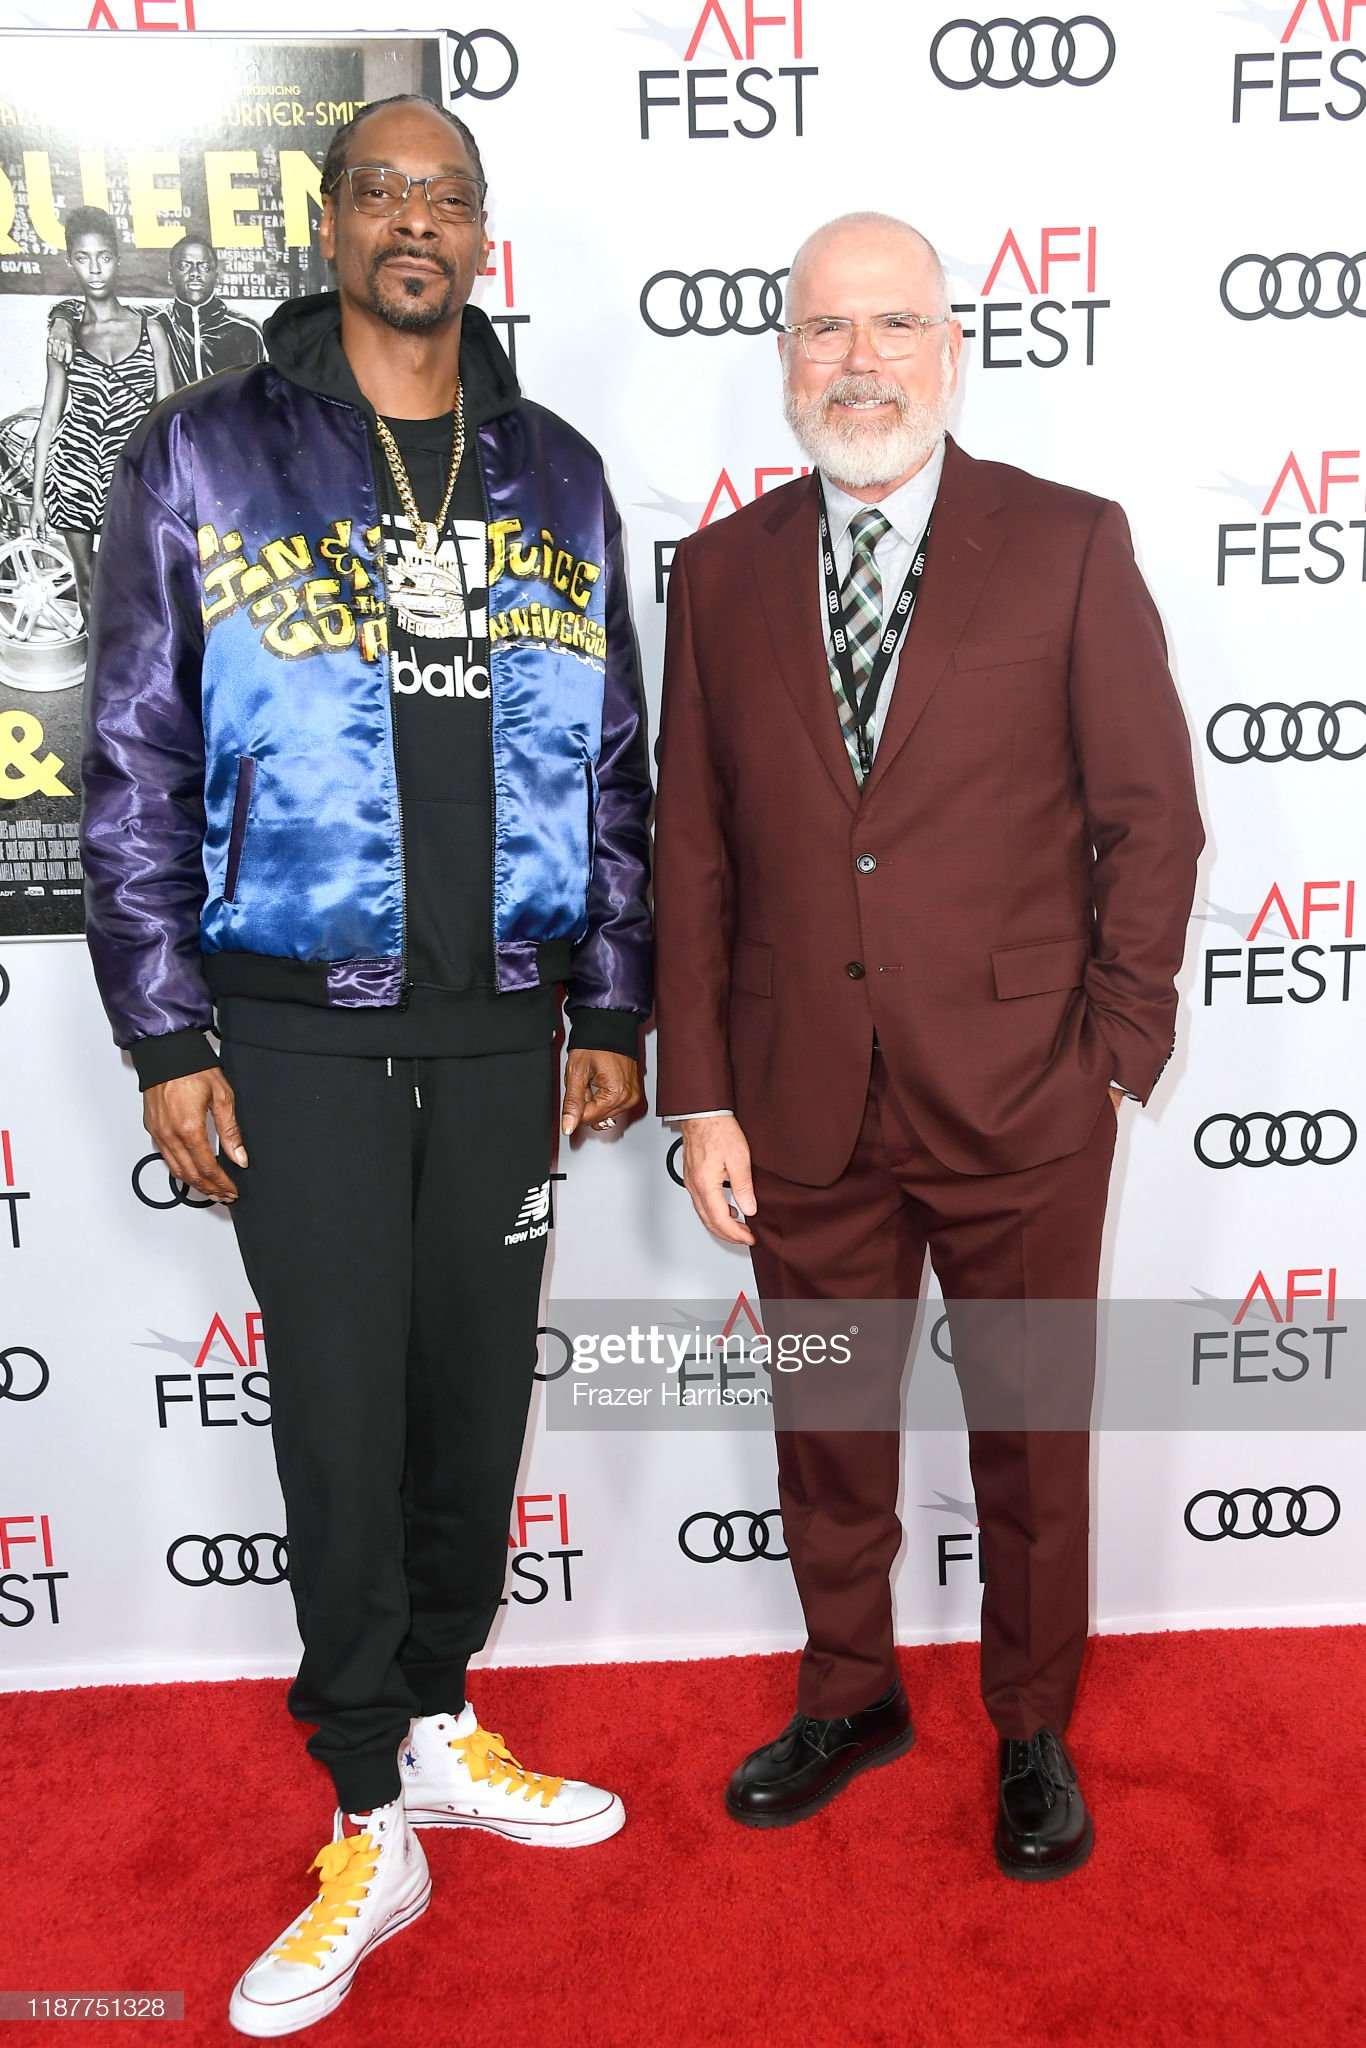 ¿Cuánto mide Bob Gazzale? - Real height Snoop-dogg-and-afi-festivals-director-michael-lumpkin-attend-the-picture-id1187751328?s=2048x2048